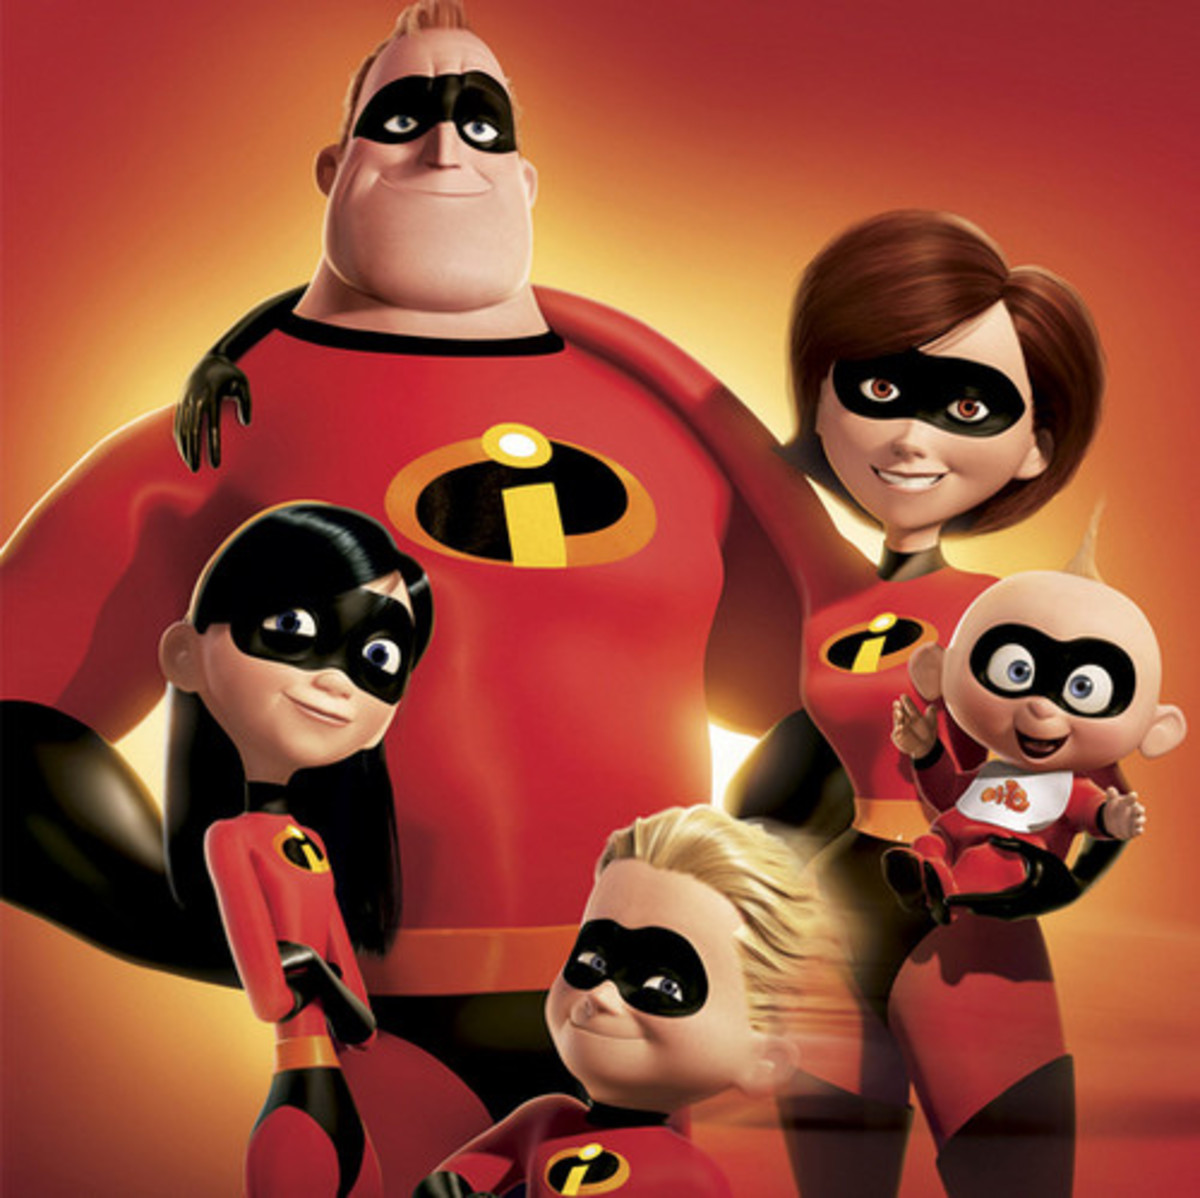 Pixar's The Incredibles 2